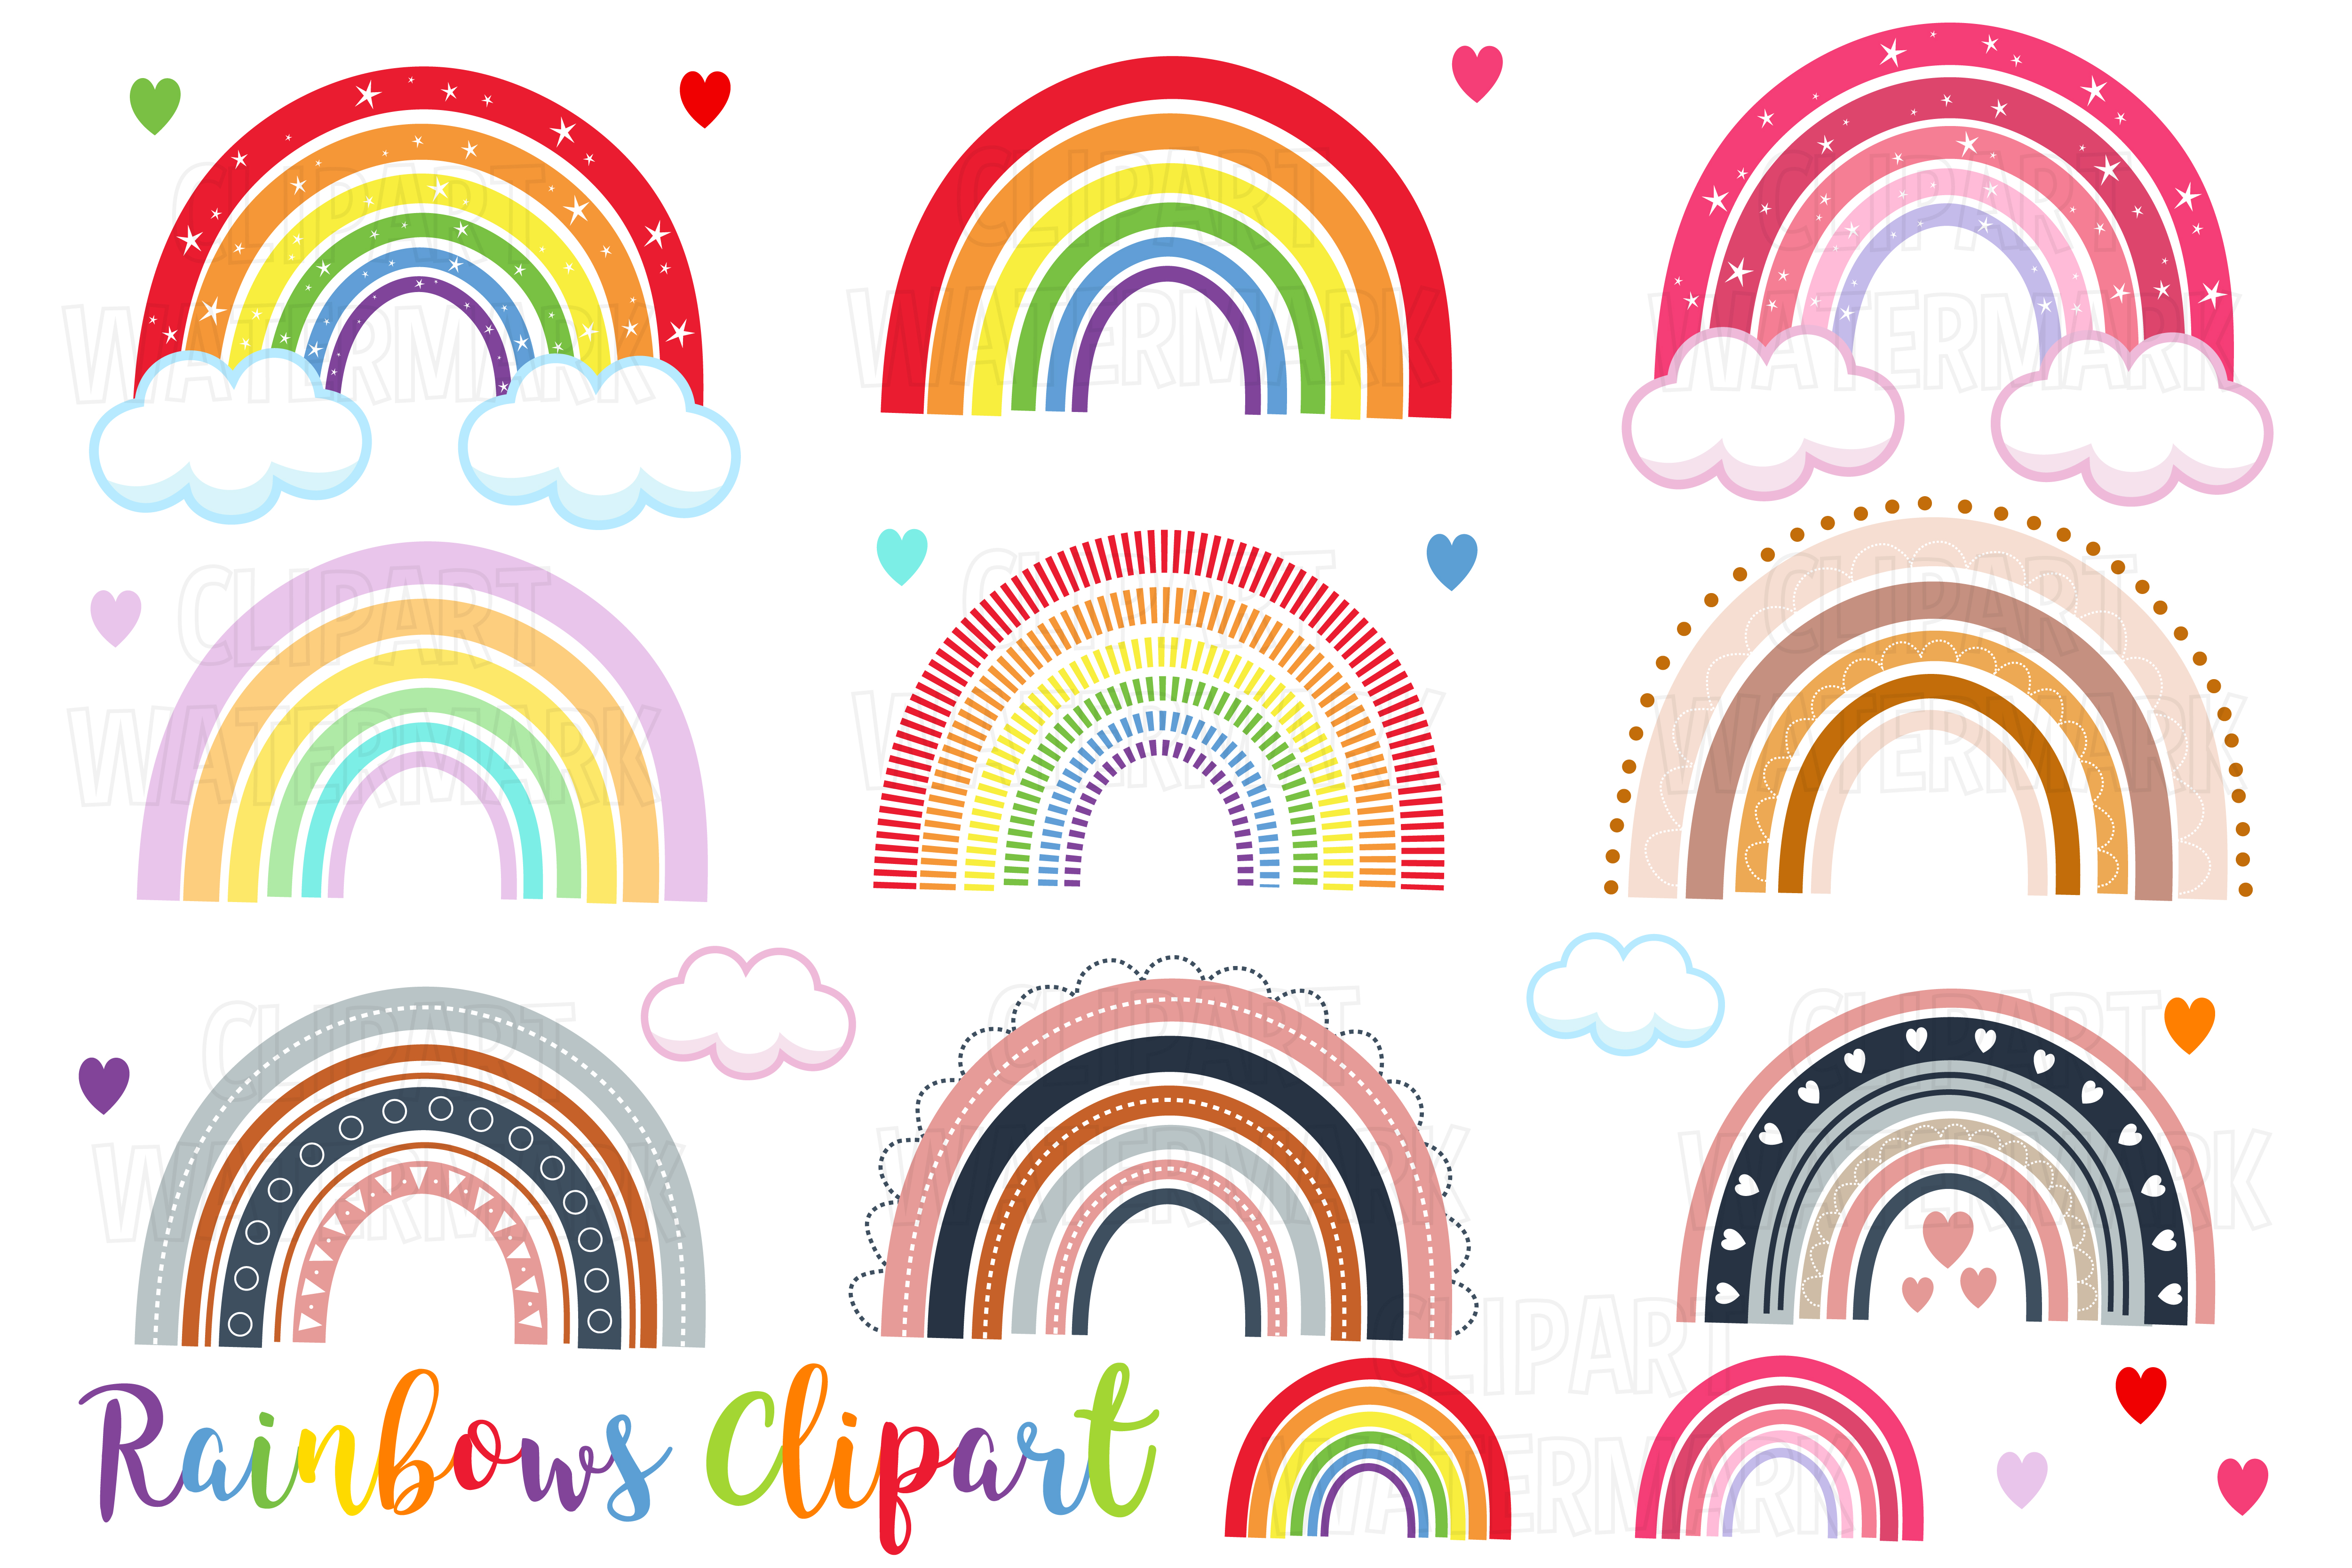 Download Free Rainbows Clipart Graphic By Magreenhouse Creative Fabrica for Cricut Explore, Silhouette and other cutting machines.